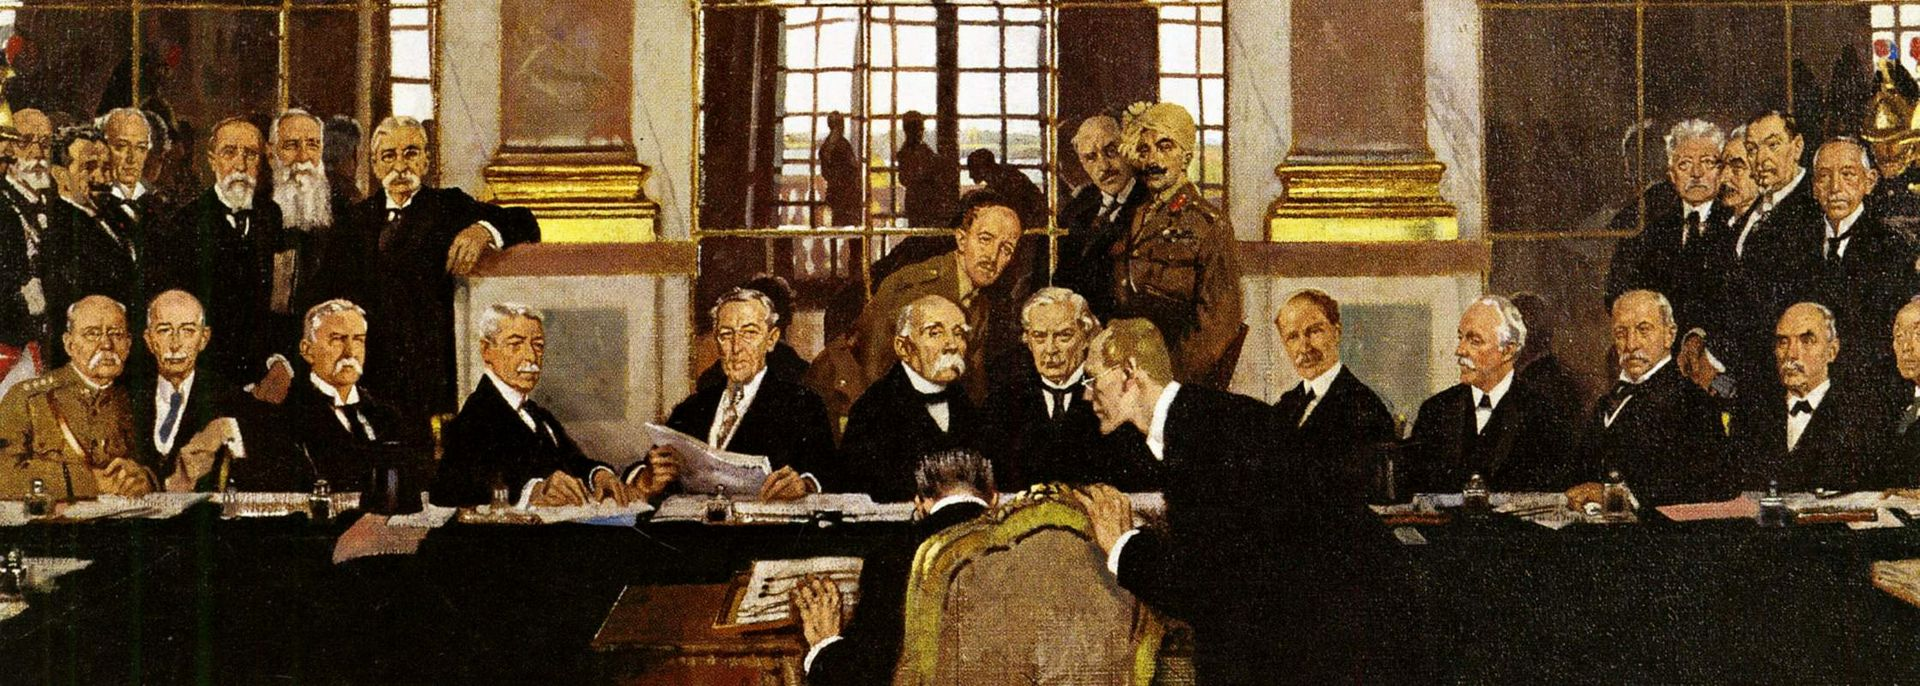 william_orpen_the_signing_of_peace_in_the_hall_of_mirrors_versailles_1919_ausschnitt.jpg